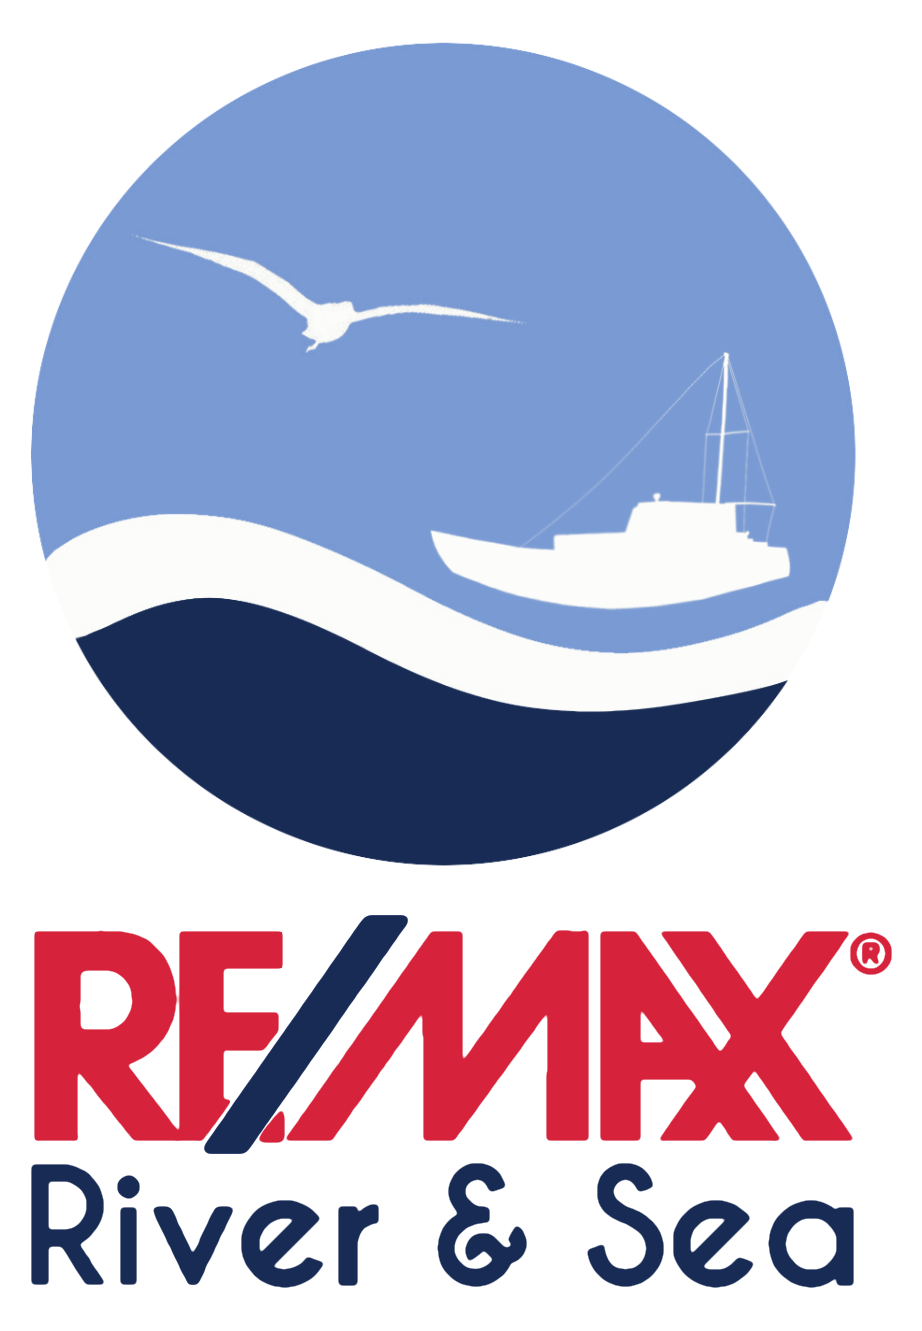 Christina Secord - RE/MAX River & Sea Logo